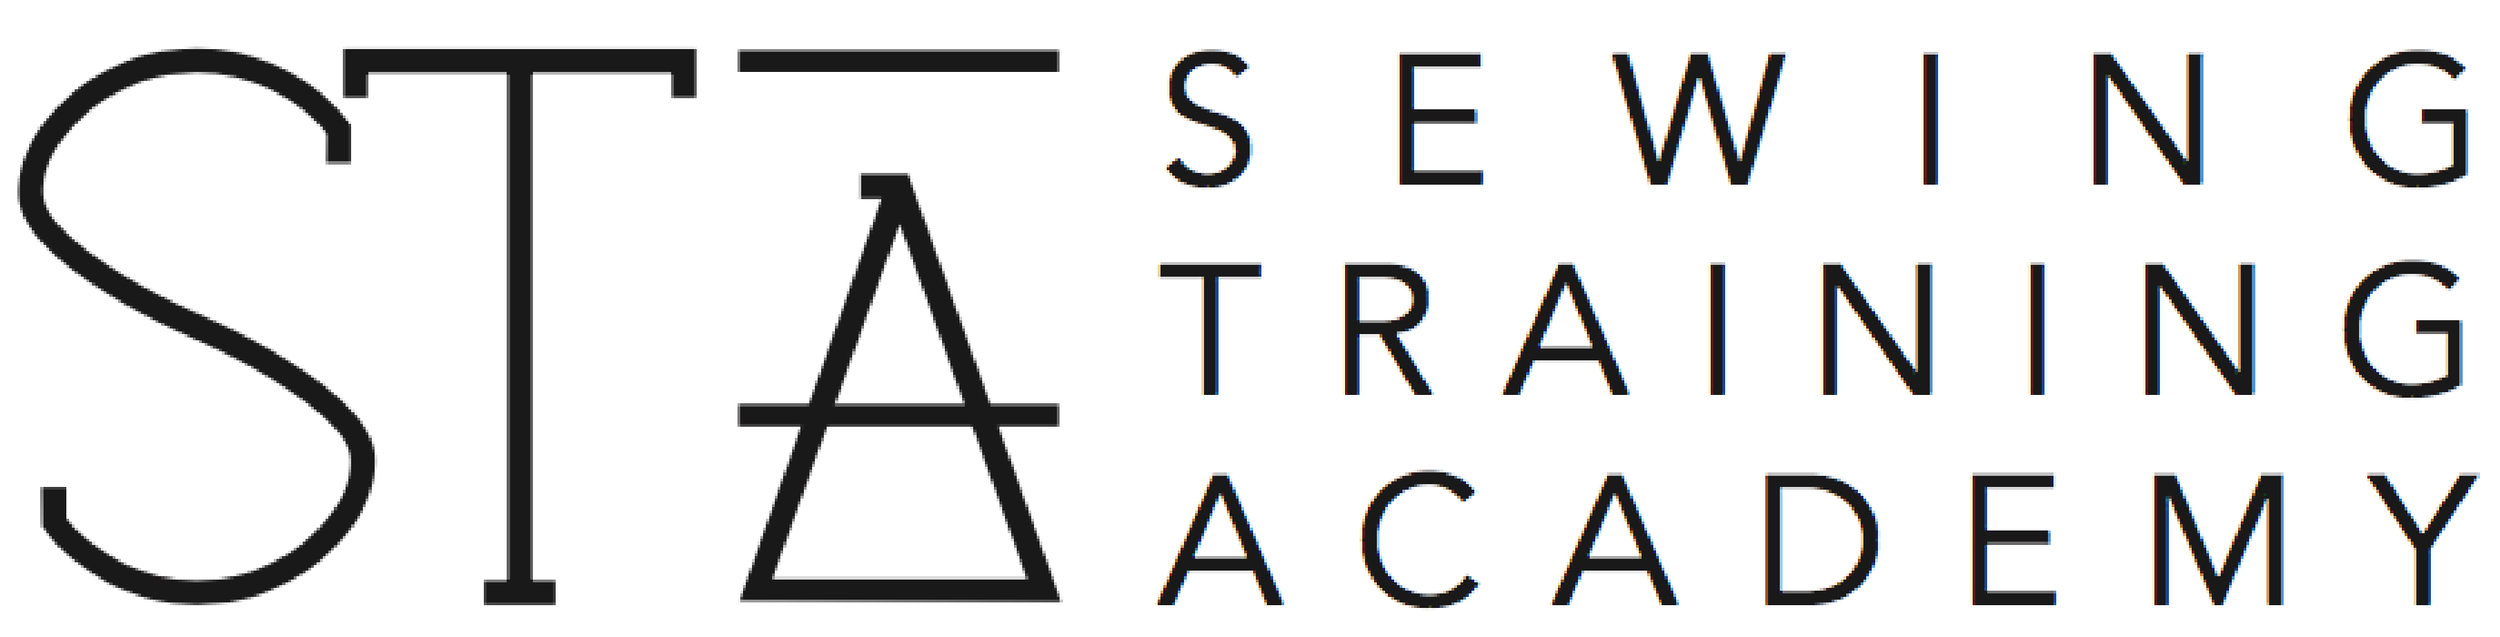 Sewing Training Academy